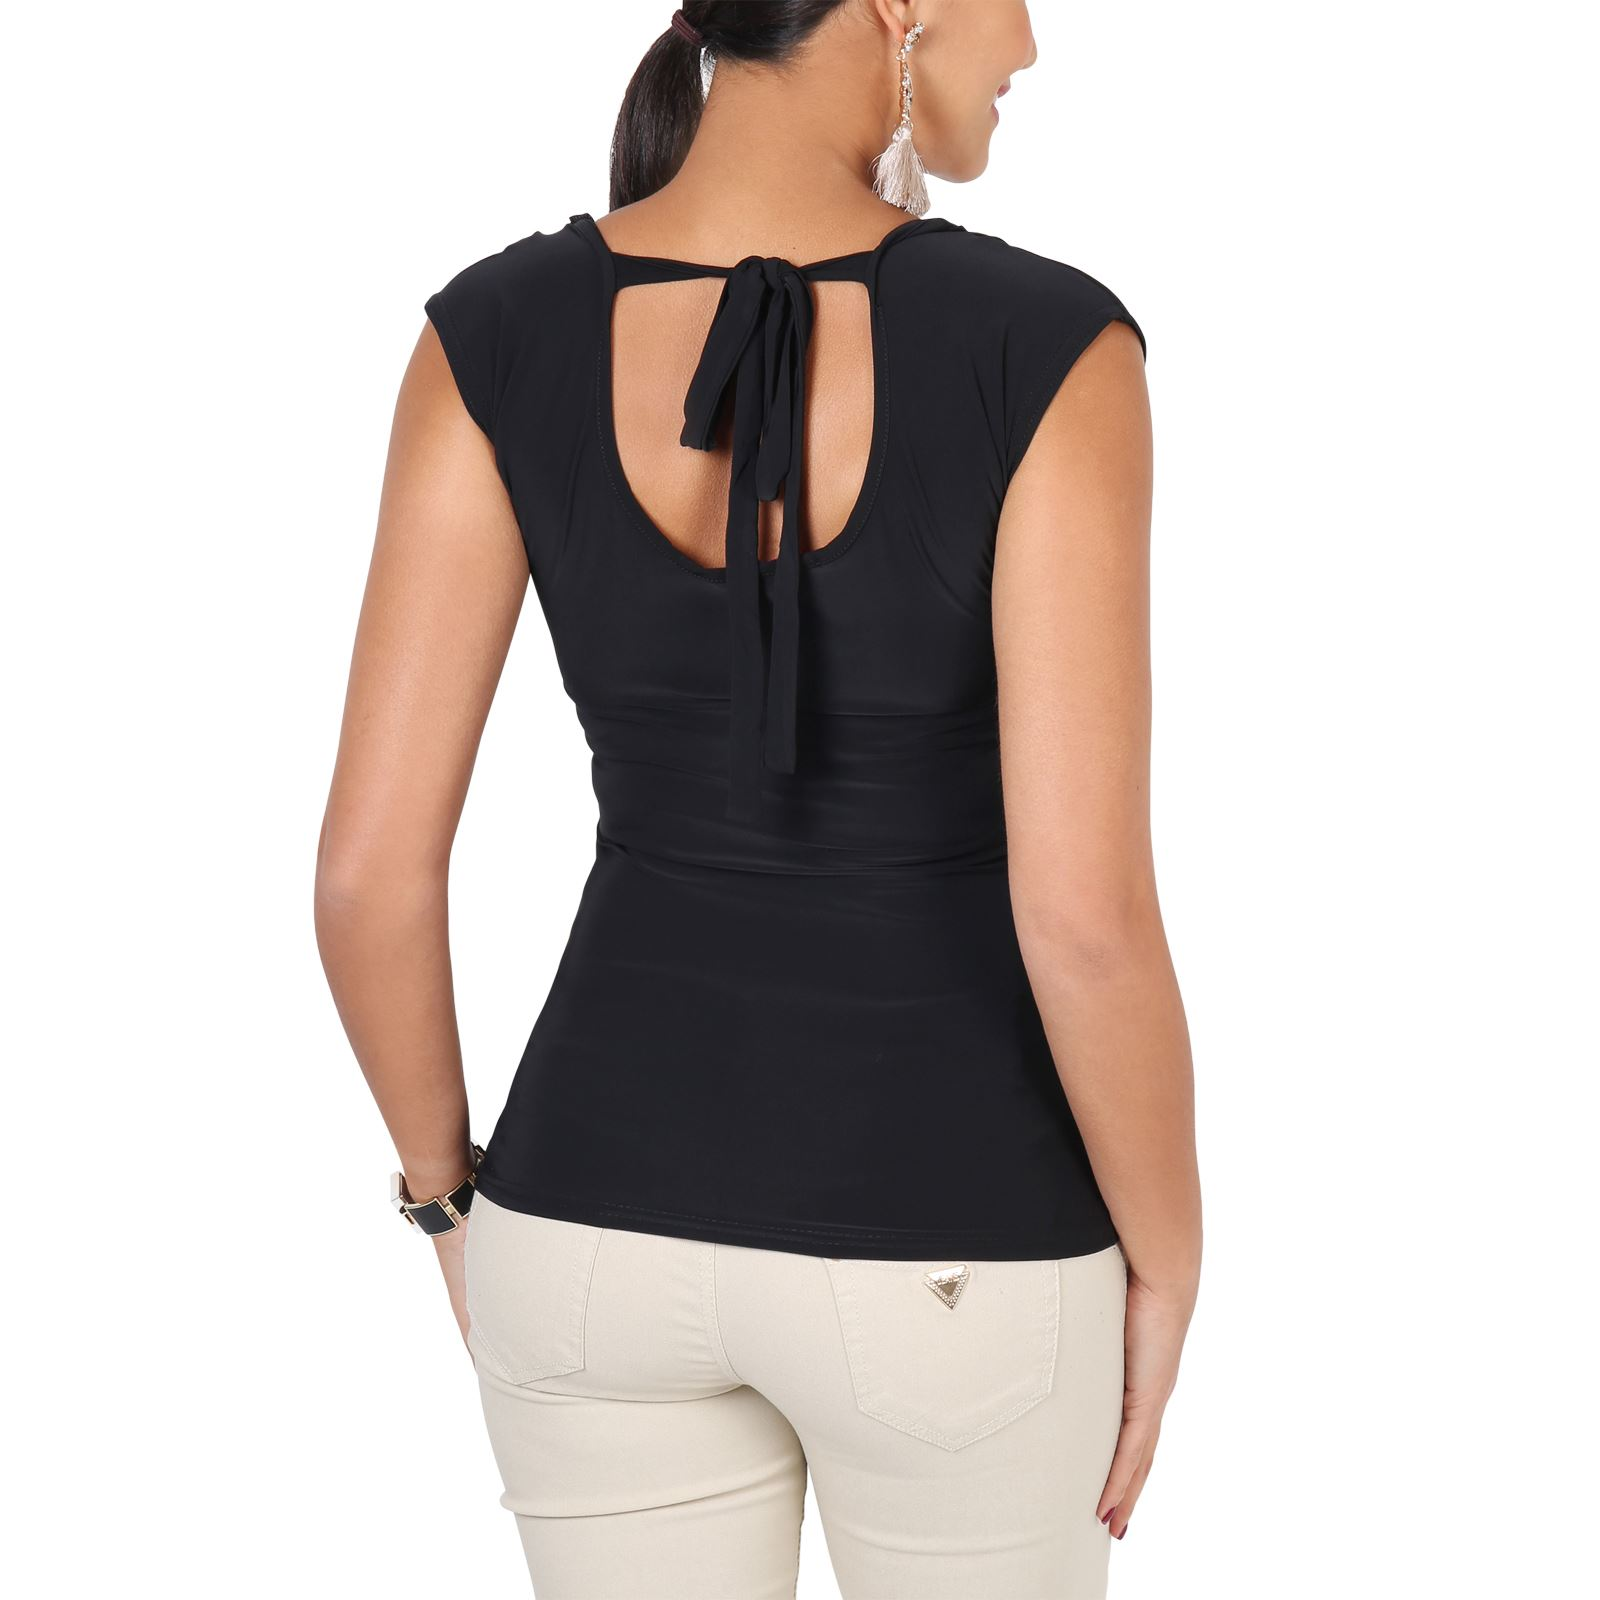 Womens-Ladies-Cowl-Neck-Blouse-Sleeveless-Stretch-Summer-Jersey-Top-Size-8-20 thumbnail 3